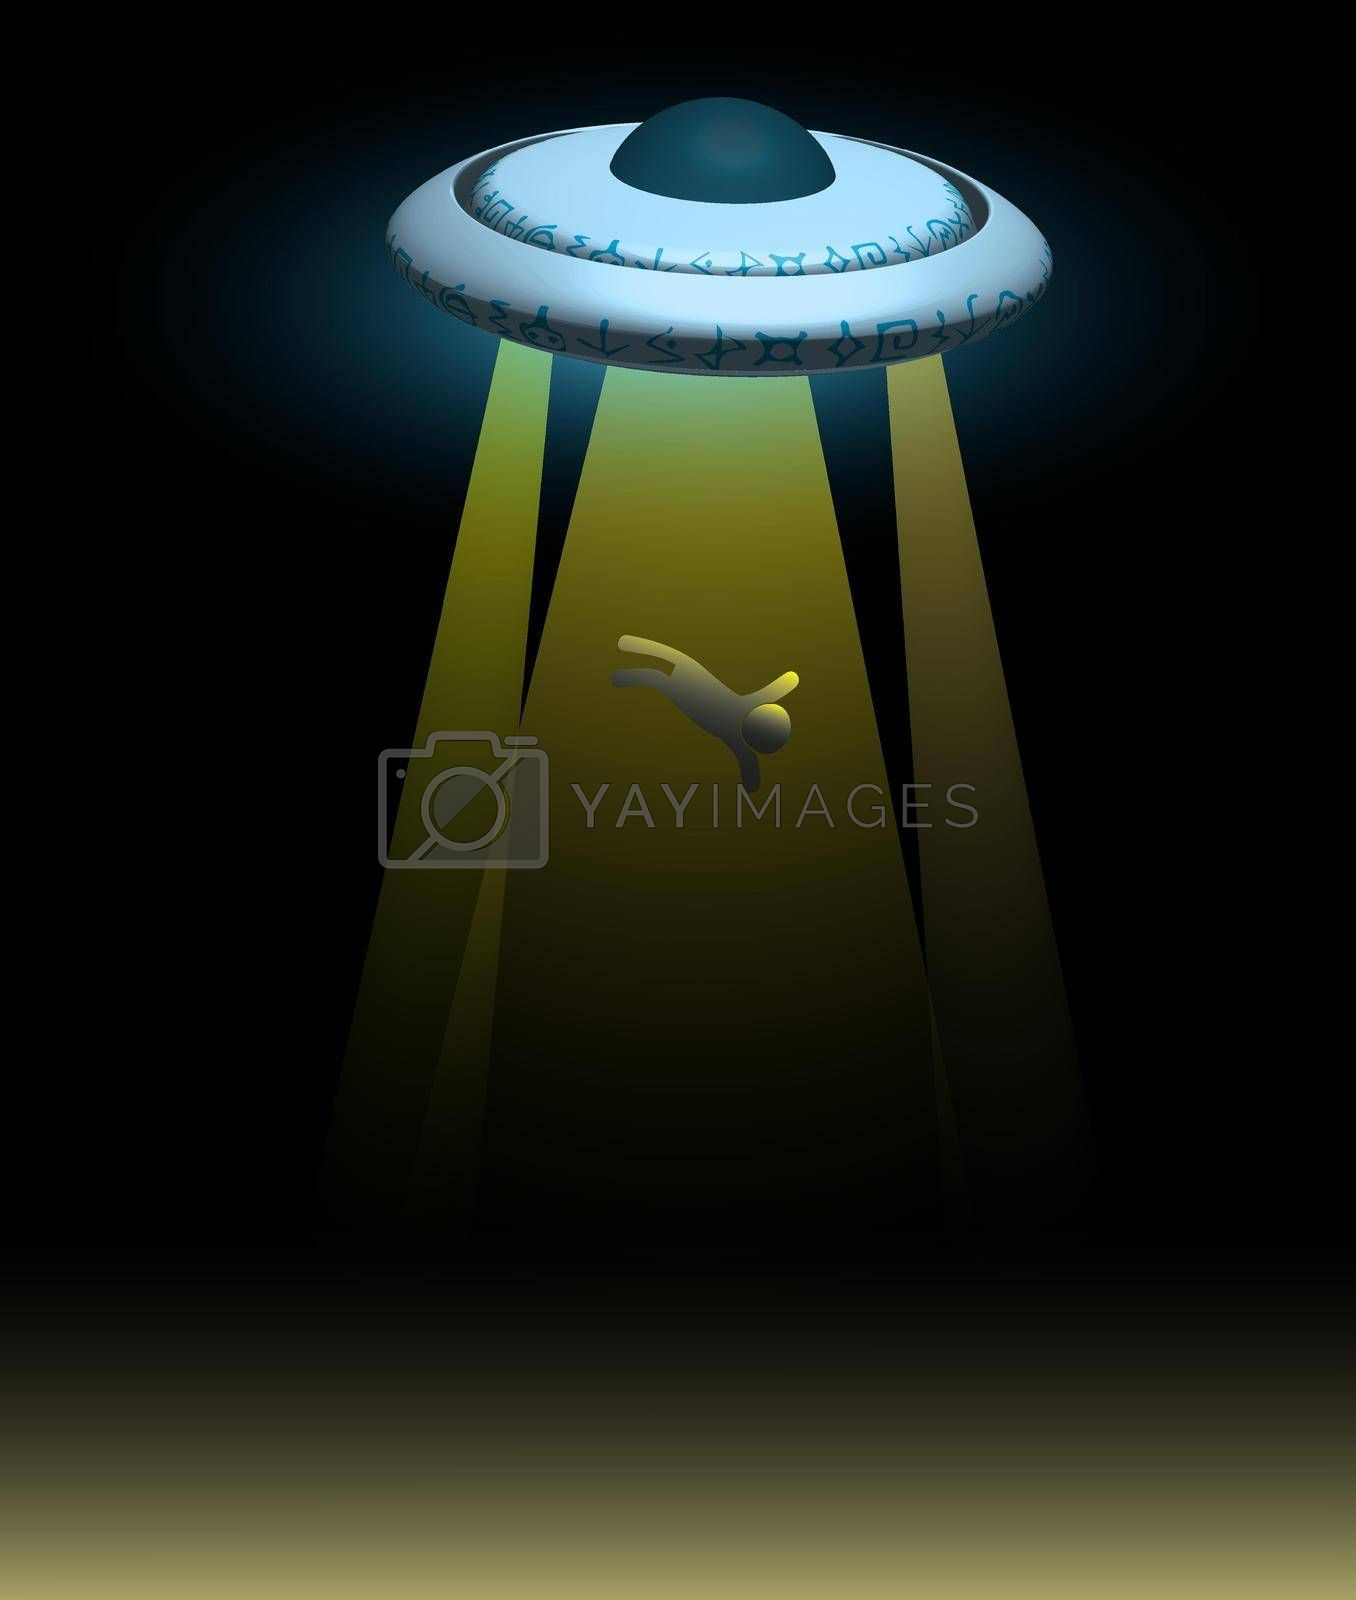 alien spaceship. A flying saucer abducts a person at night. Illustration, vector